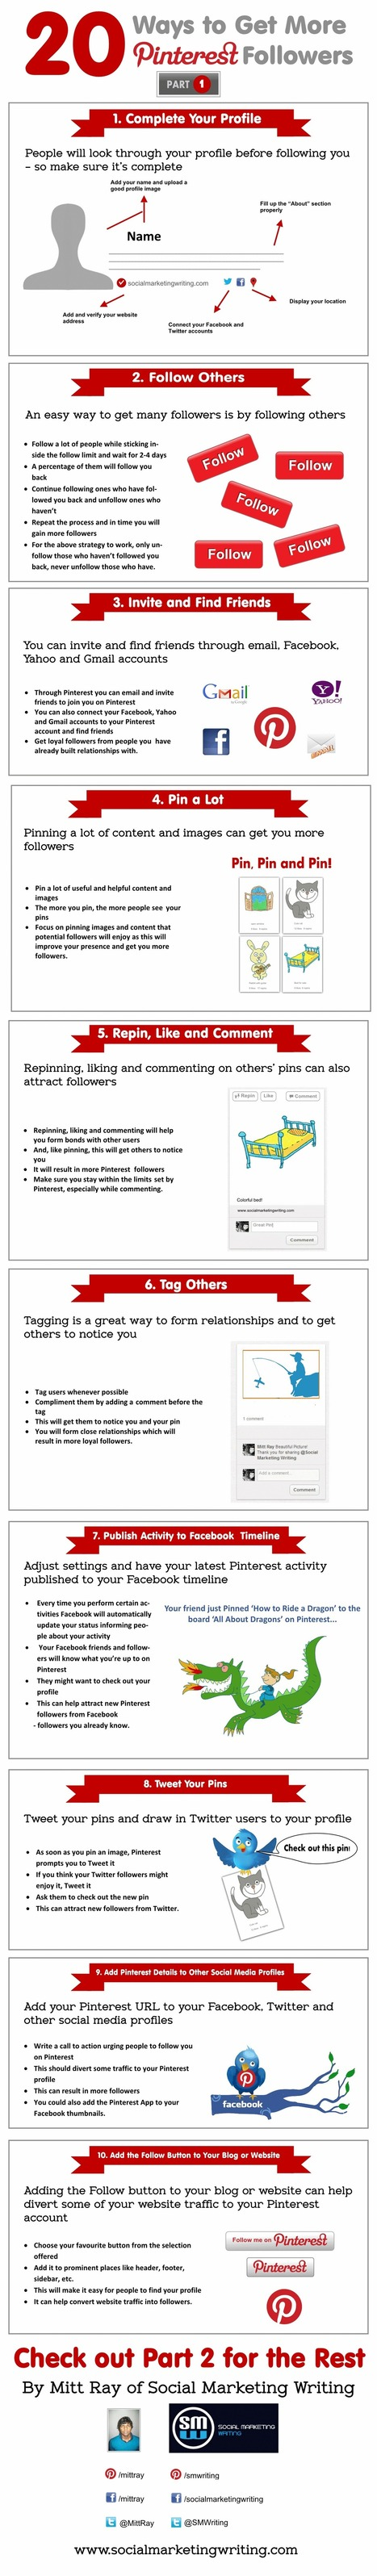 20 Ways to Get More Pinterest Followers - Part I | Reputation Management | Scoop.it